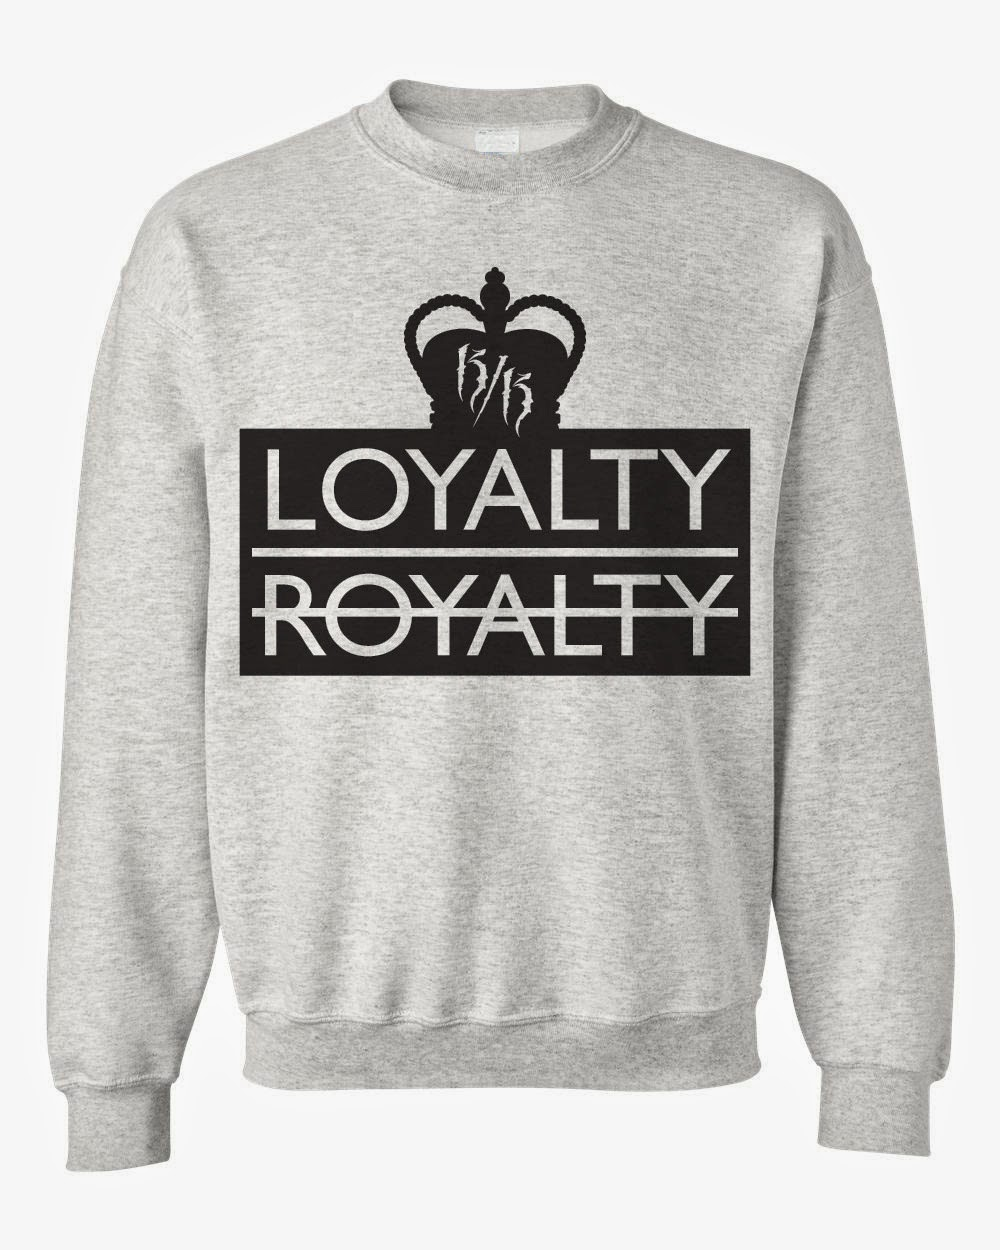 Royalty Over Loyalty Coloring Page: King Kairos Clothing Co